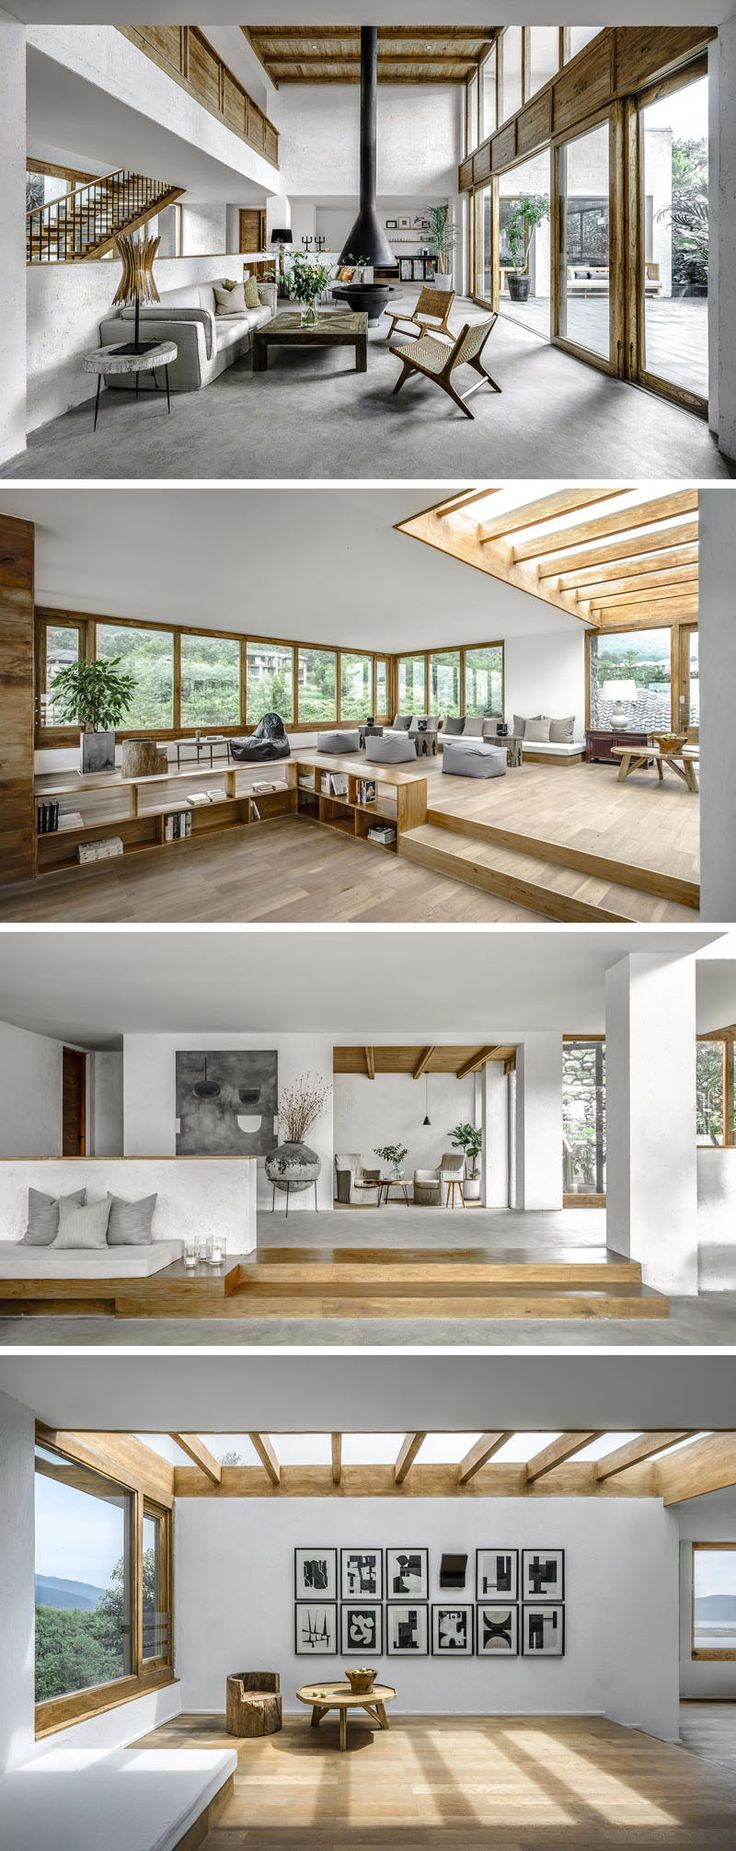 The Pure House Boutique Hotel By Yueji Architectural Design Office